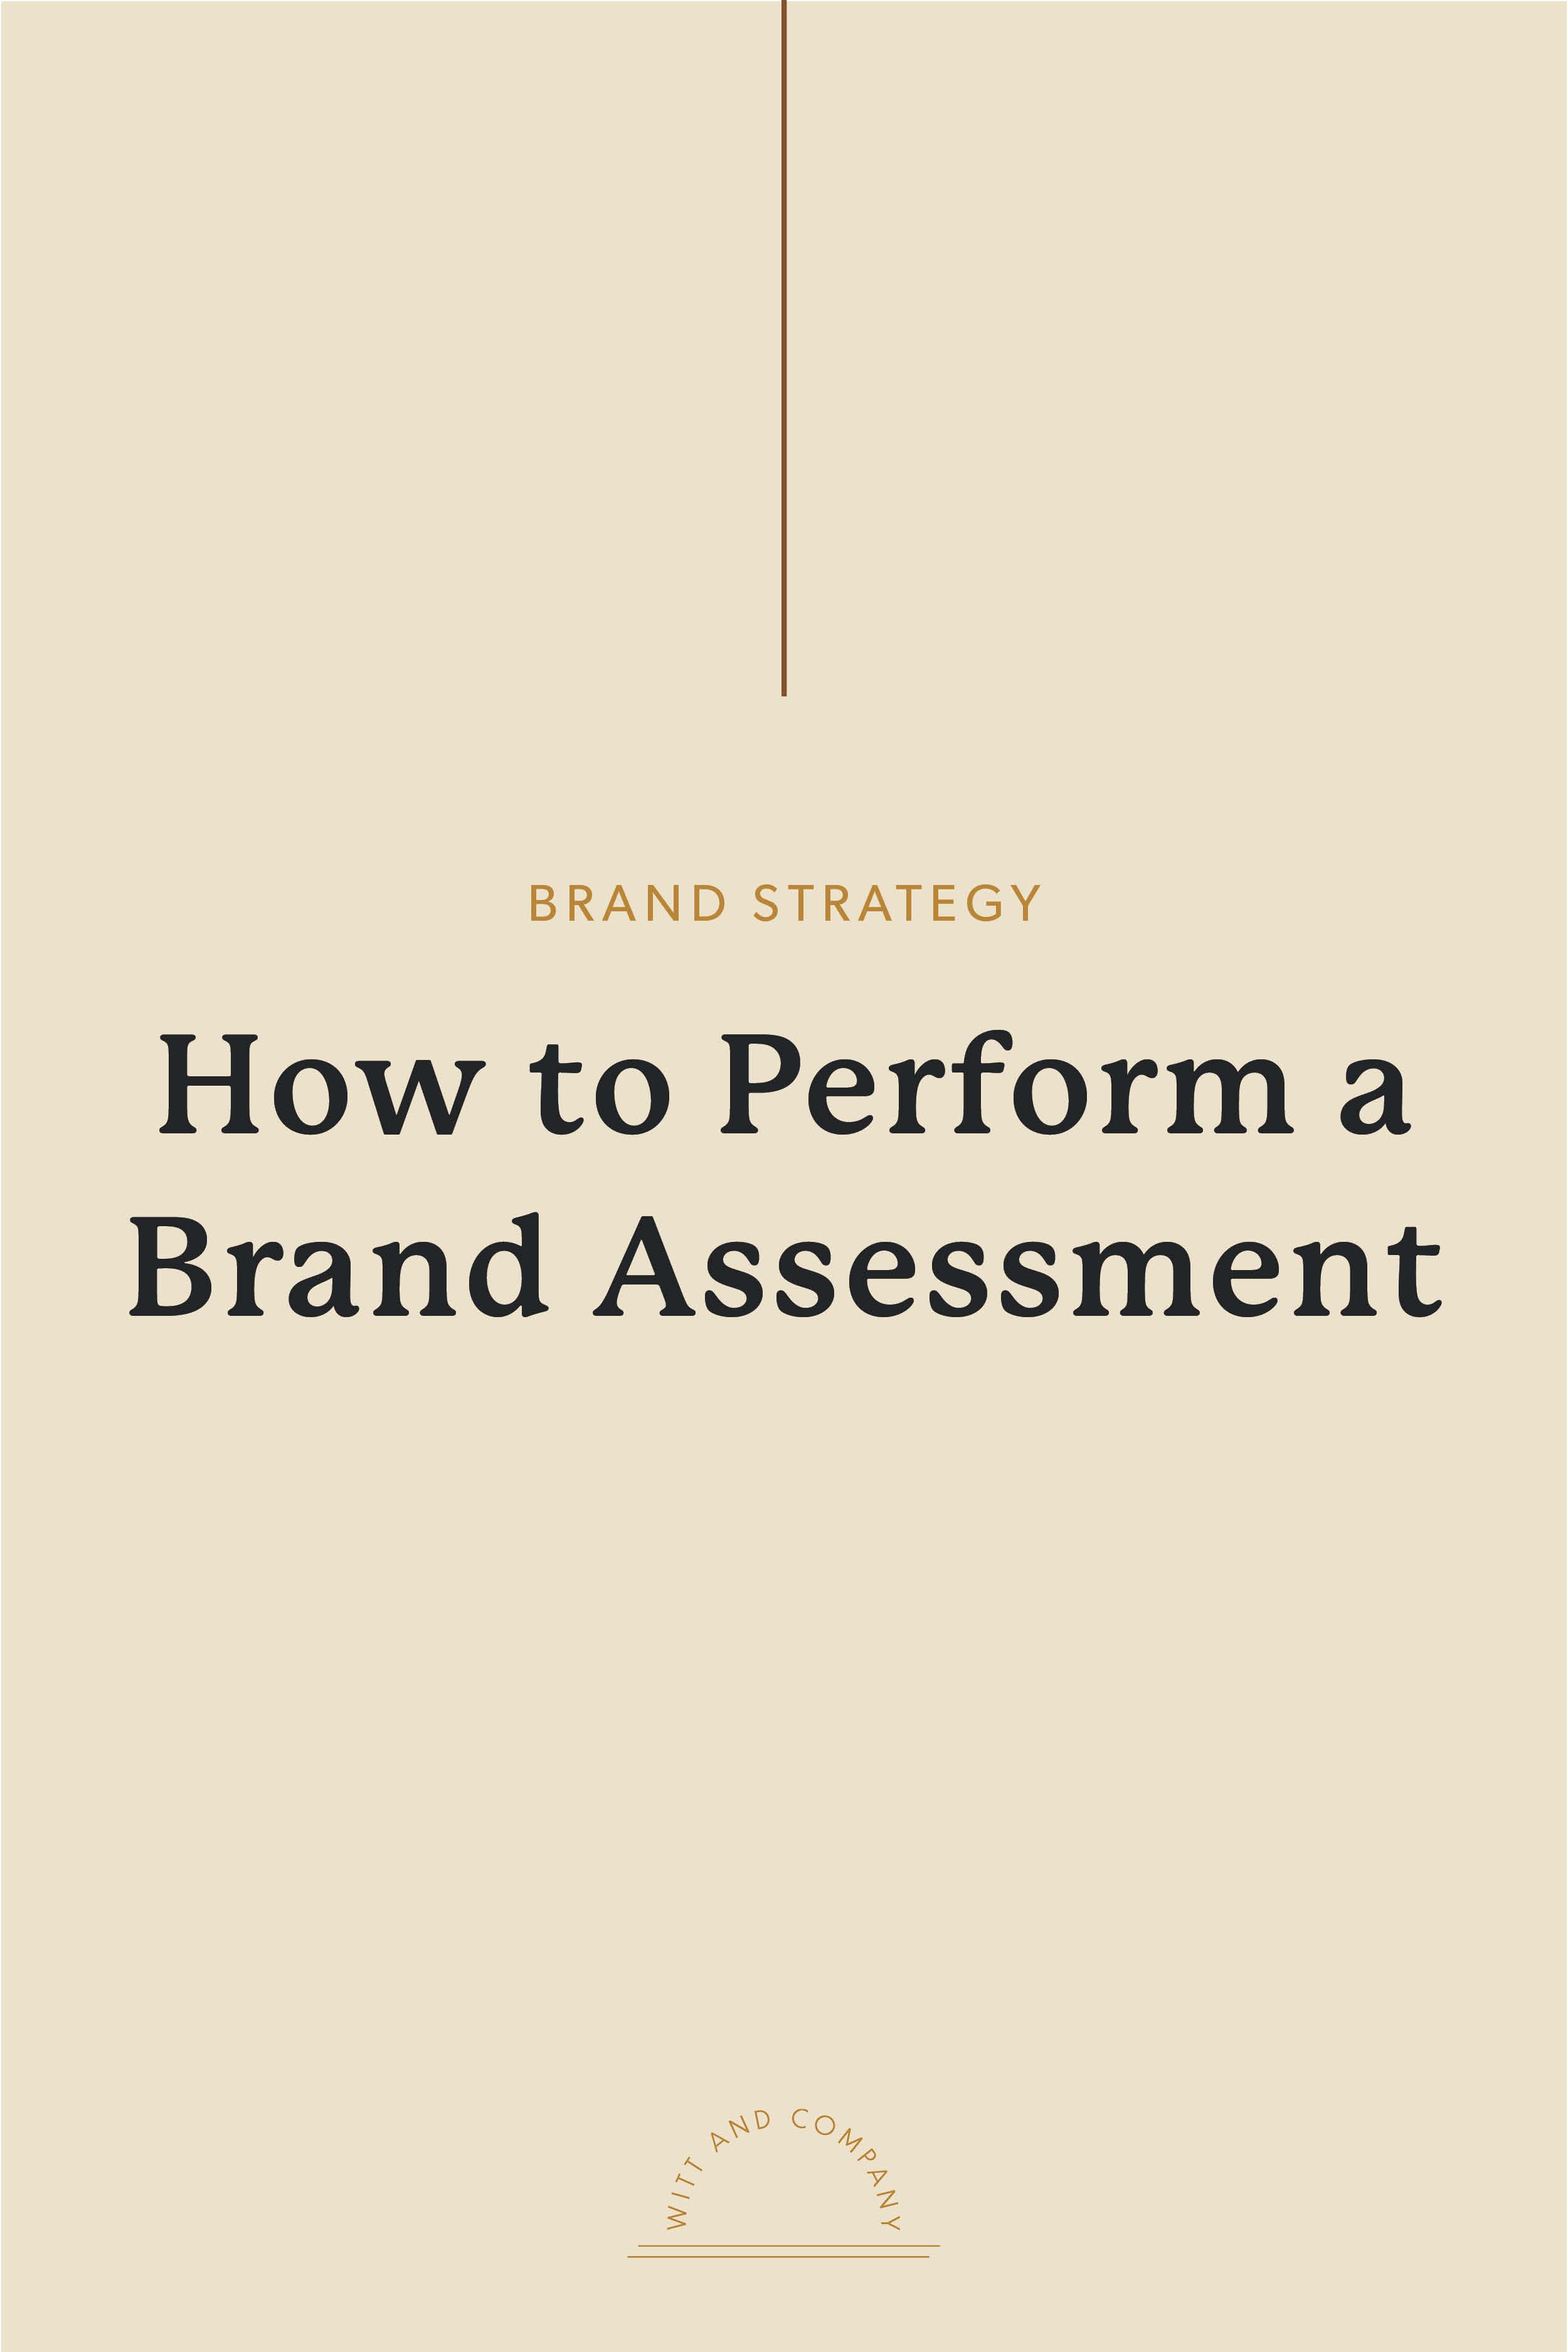 How to Conduct a Five Minute Brand Assessment